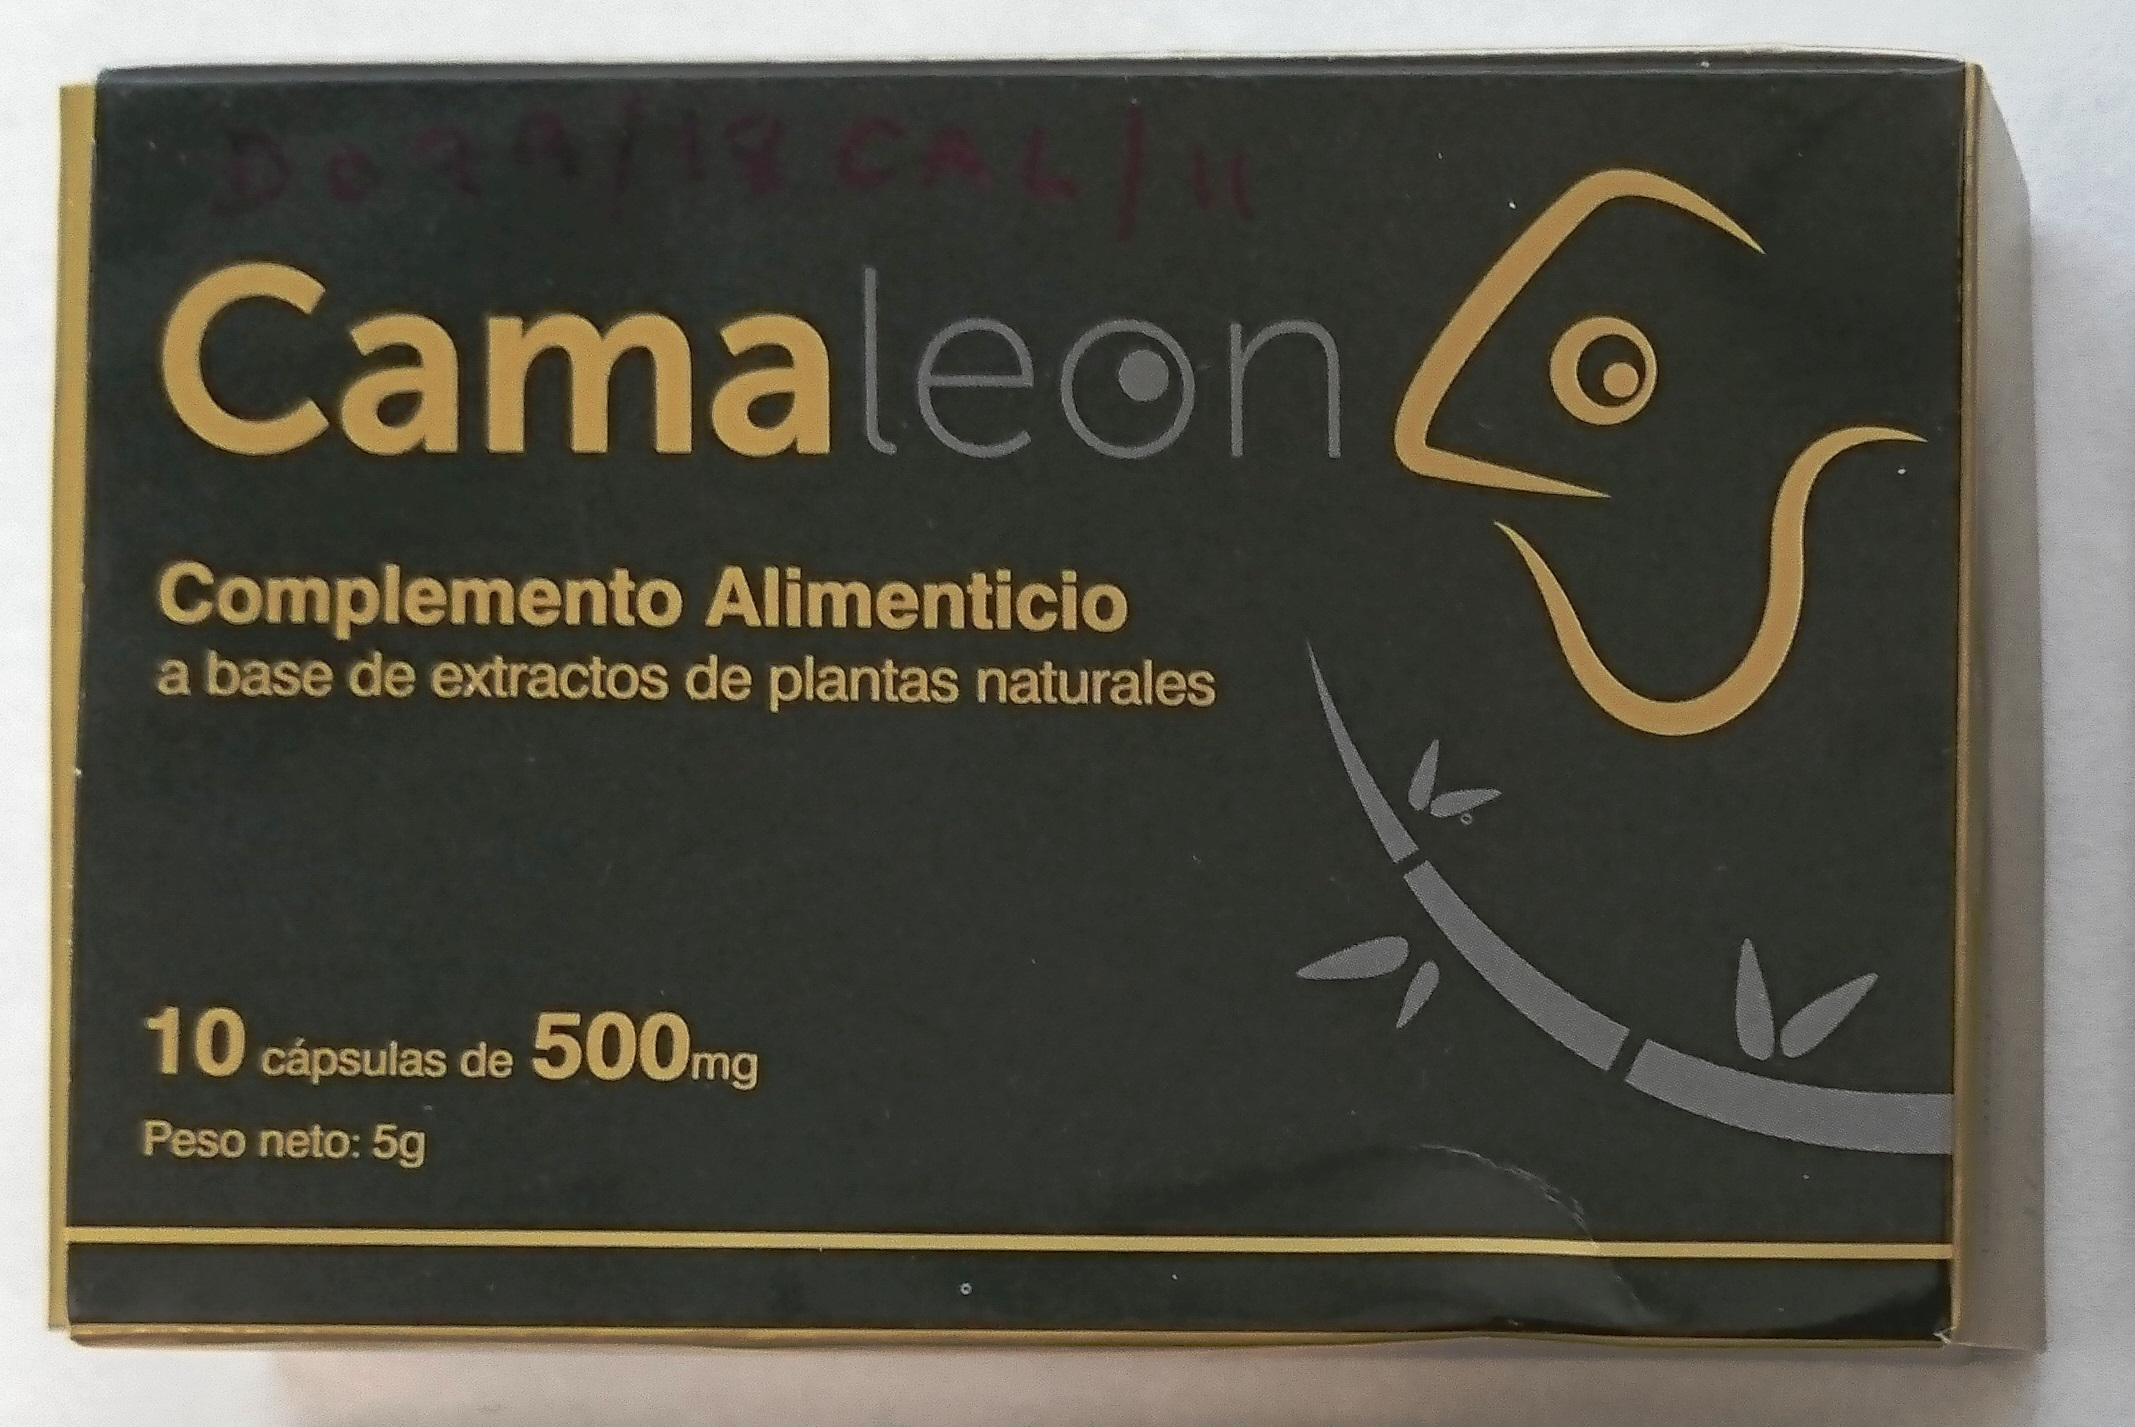 Image of the illigal product: Camaleon